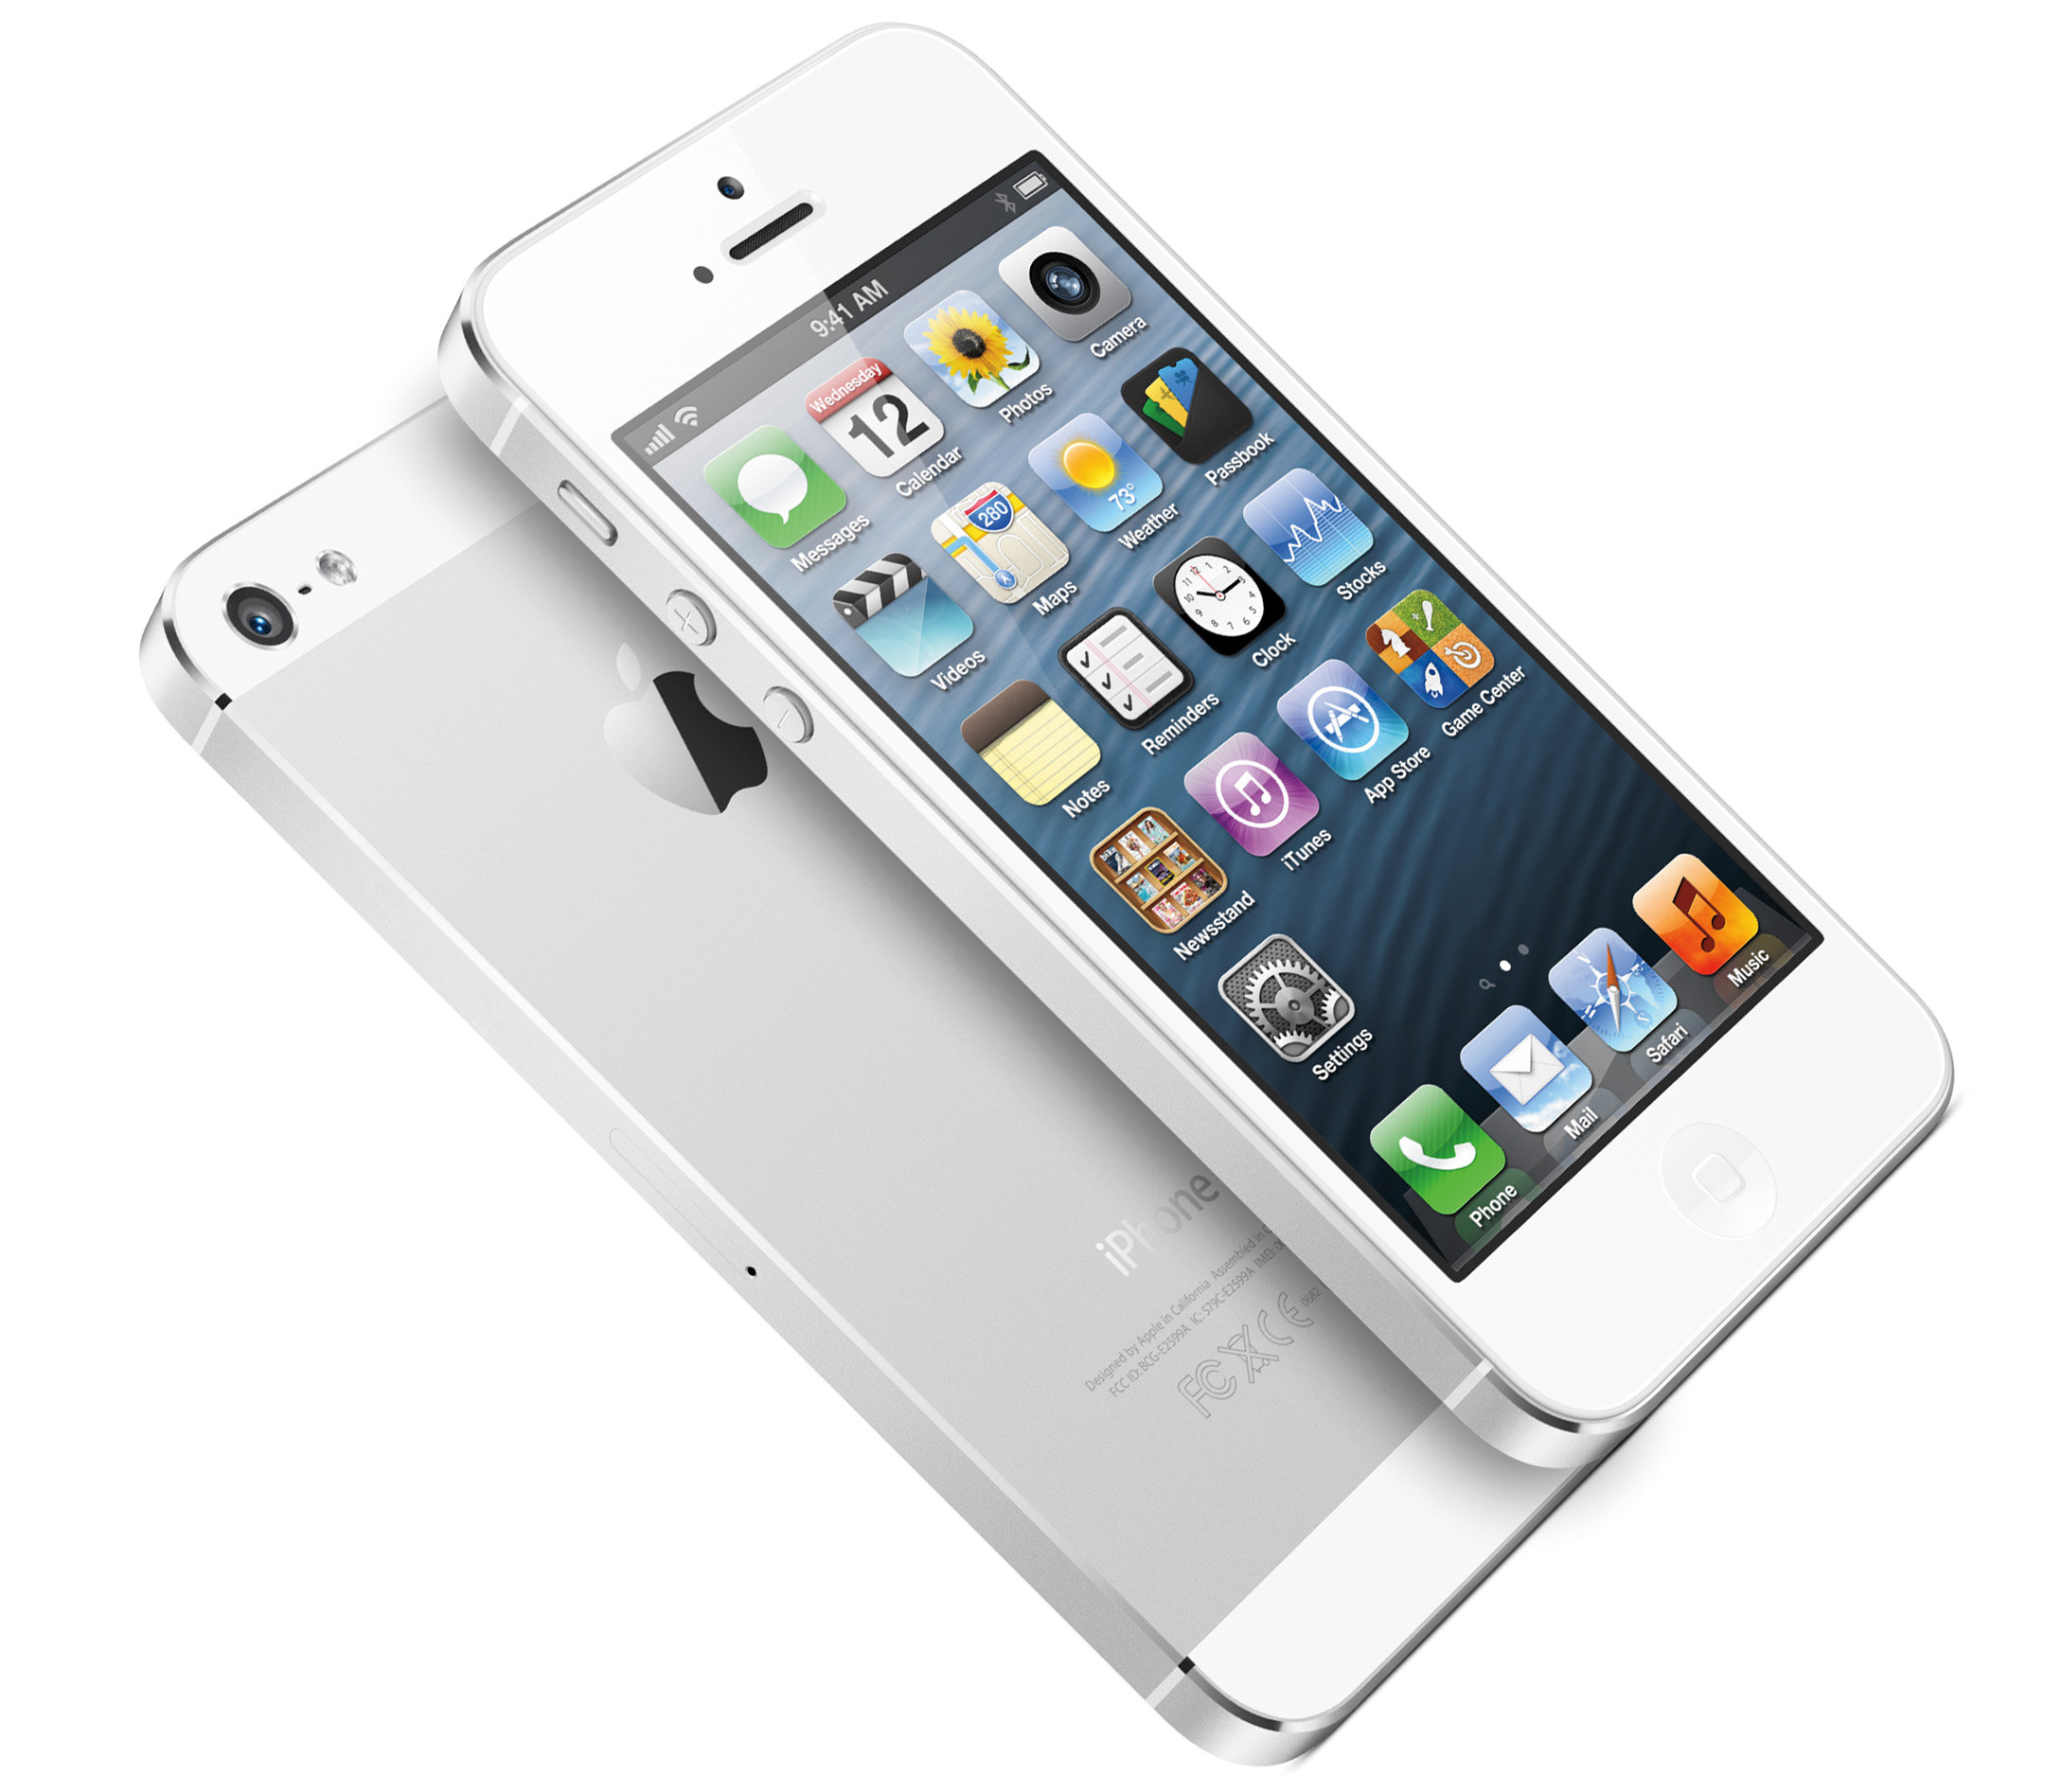 Apple iPhone 5 unlocked models now available